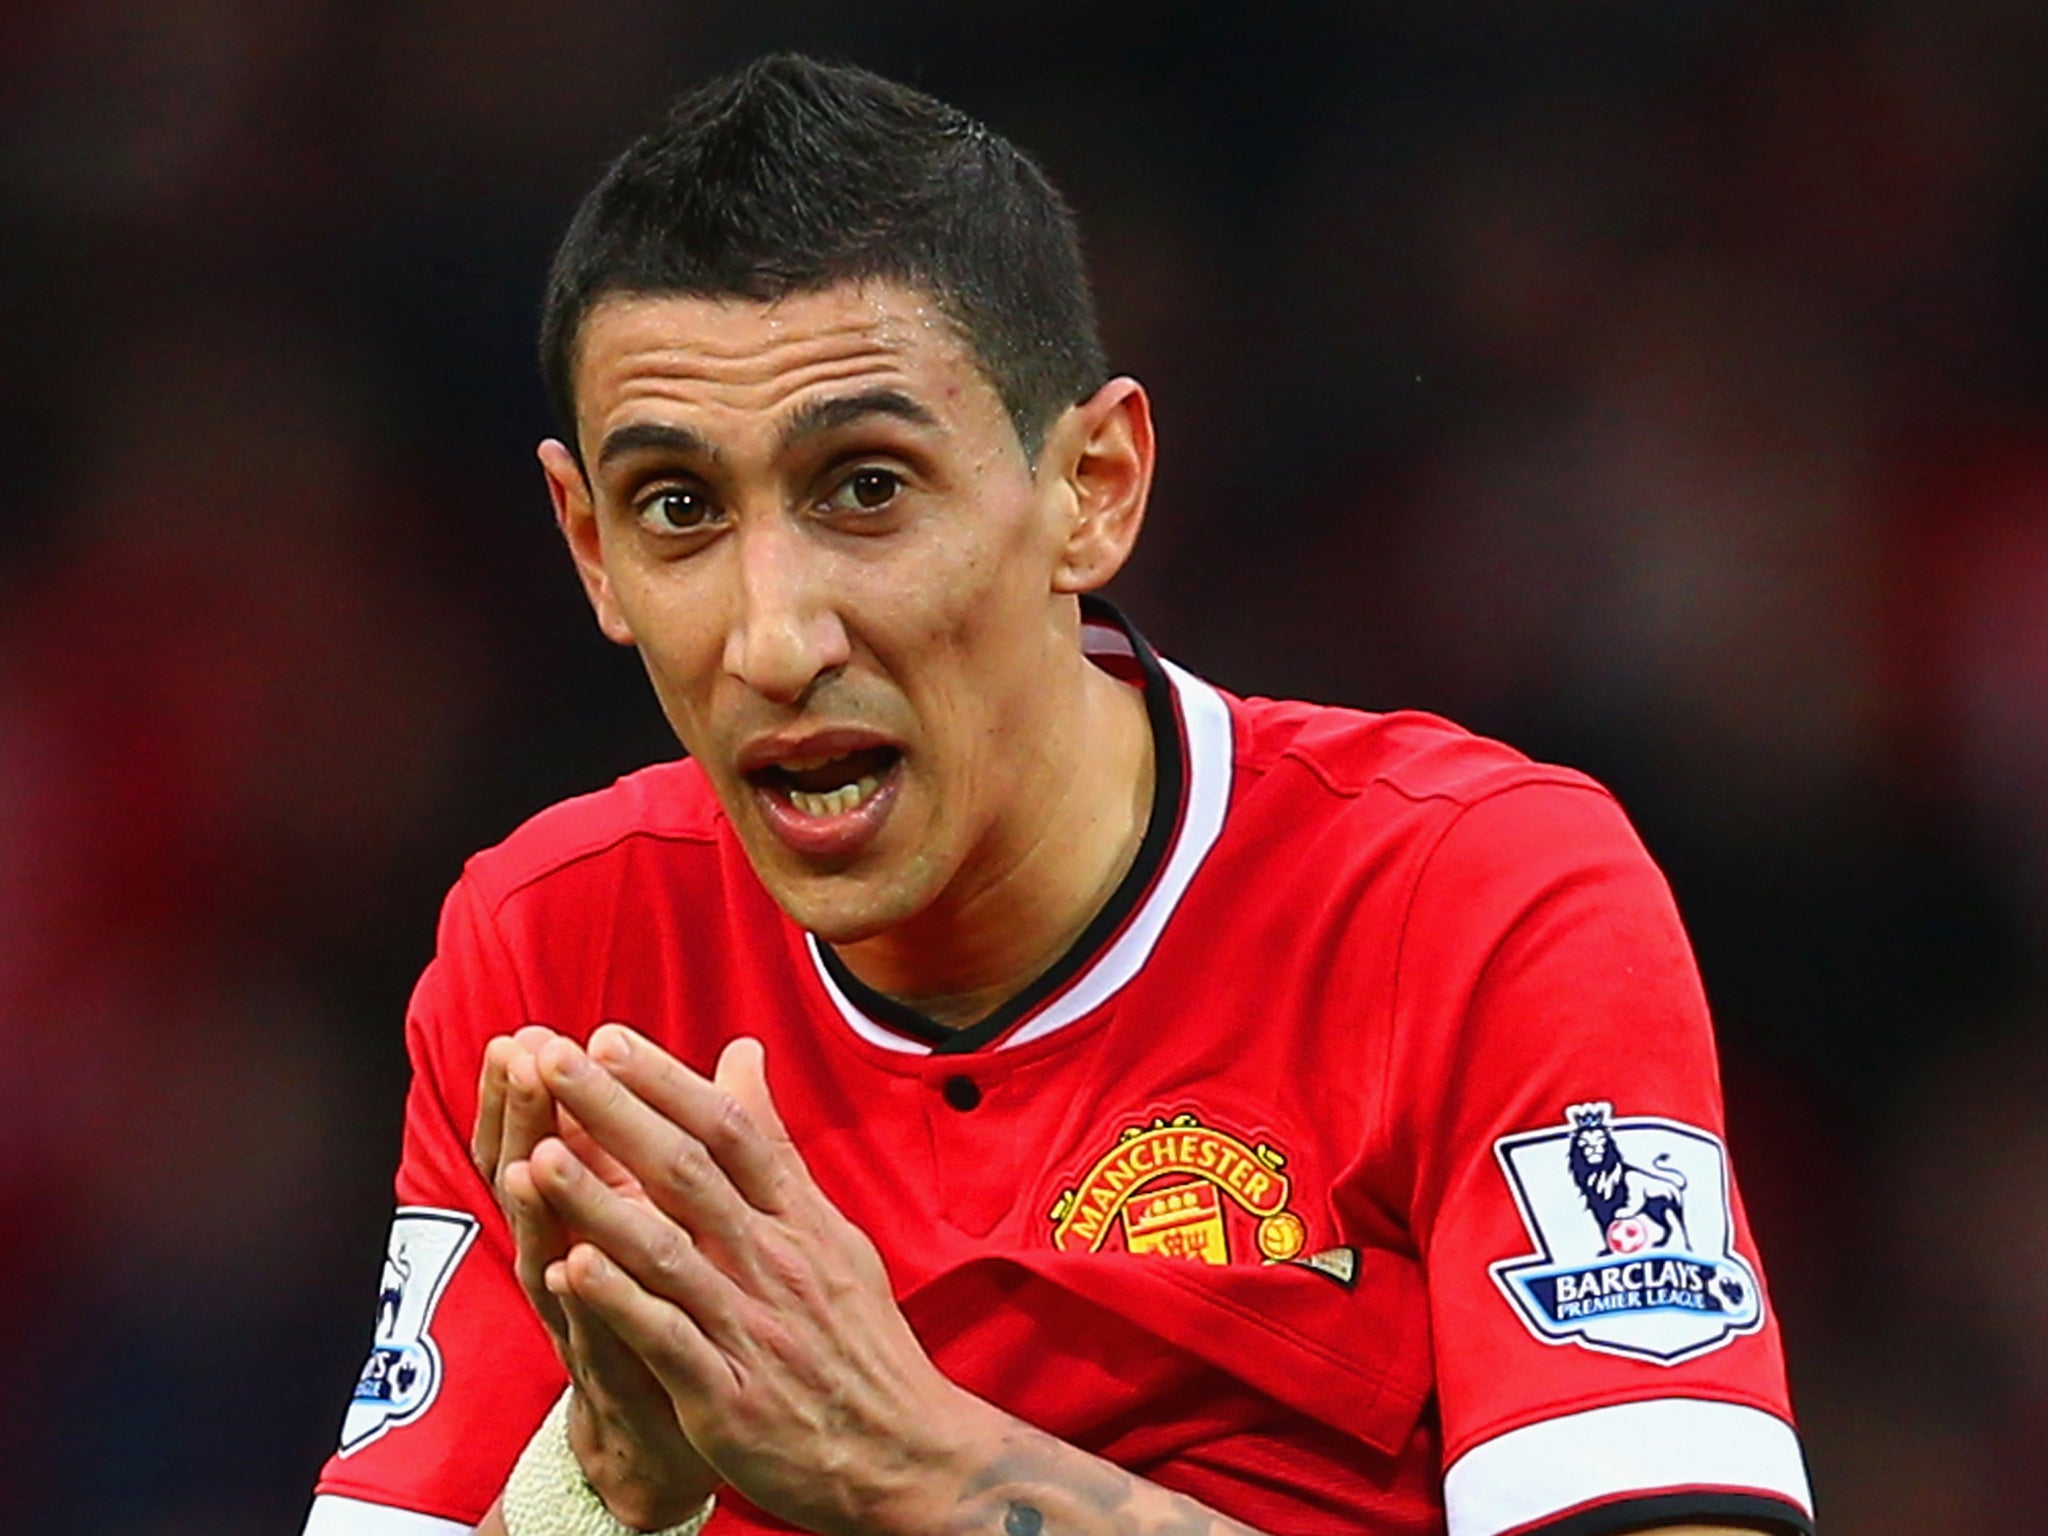 Angel Di Maria was sold to Manchester United because he was too